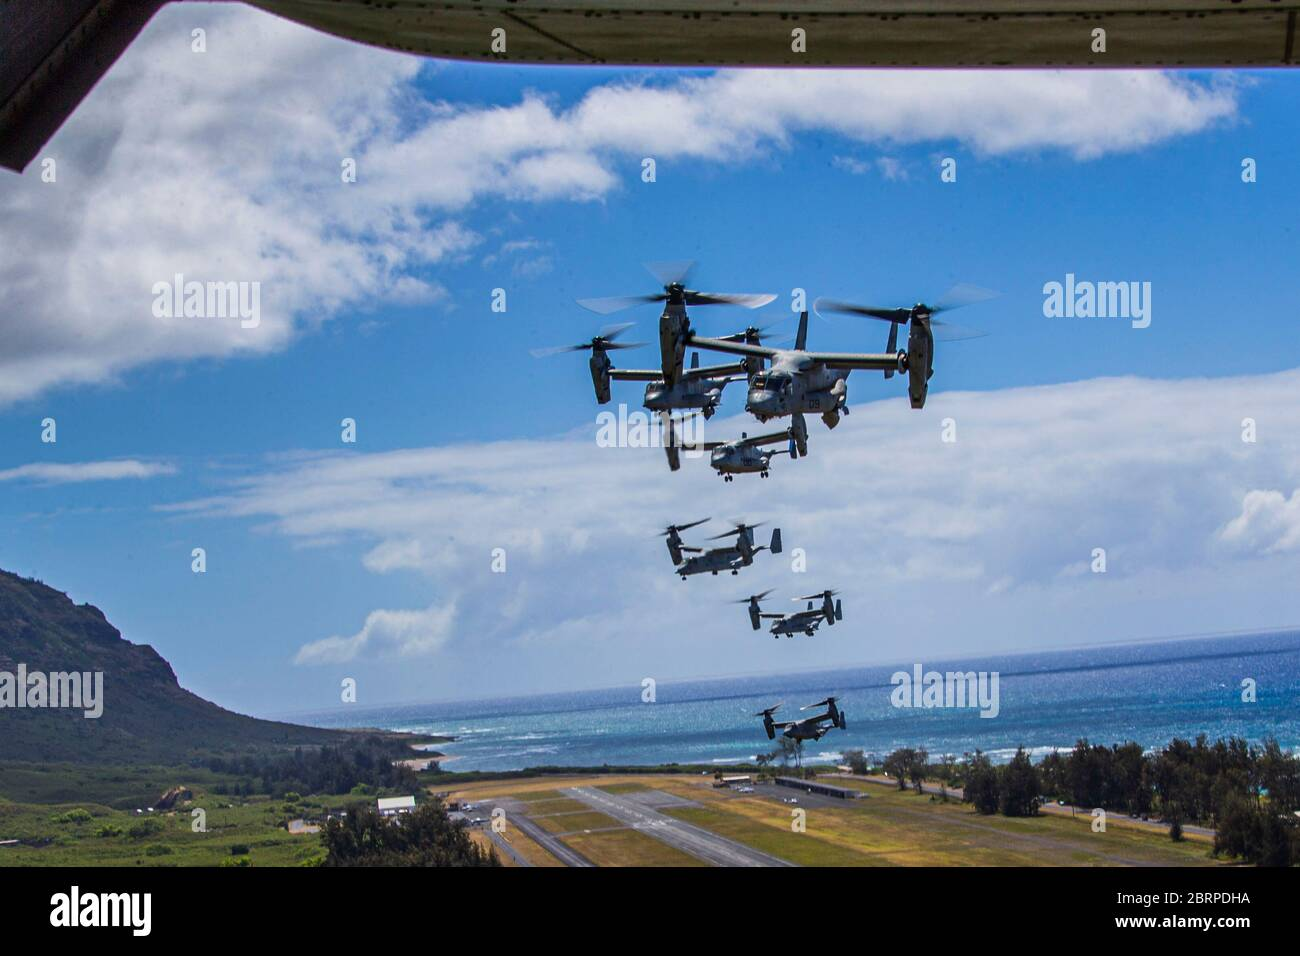 U.S. Marines with Marine Medium Tiltrotor Squadron 363, Marine Aircraft Group 24, fly in formation during an integrated training mission, Marine Corps Air Station Kaneohe Bay, Marine Corps Base Hawaii, May 19, 2020. Utilizing three separate flying platforms, MAG-24 successfully launched seven CH-53E Super Stallions, seven MV-22B Ospreys, and two UH-1Y Venoms while hitting critical training objectives to produce maximum readiness. (U.S. Marine Corps photo by Lance Cpl. Jacob Wilson) Stock Photo